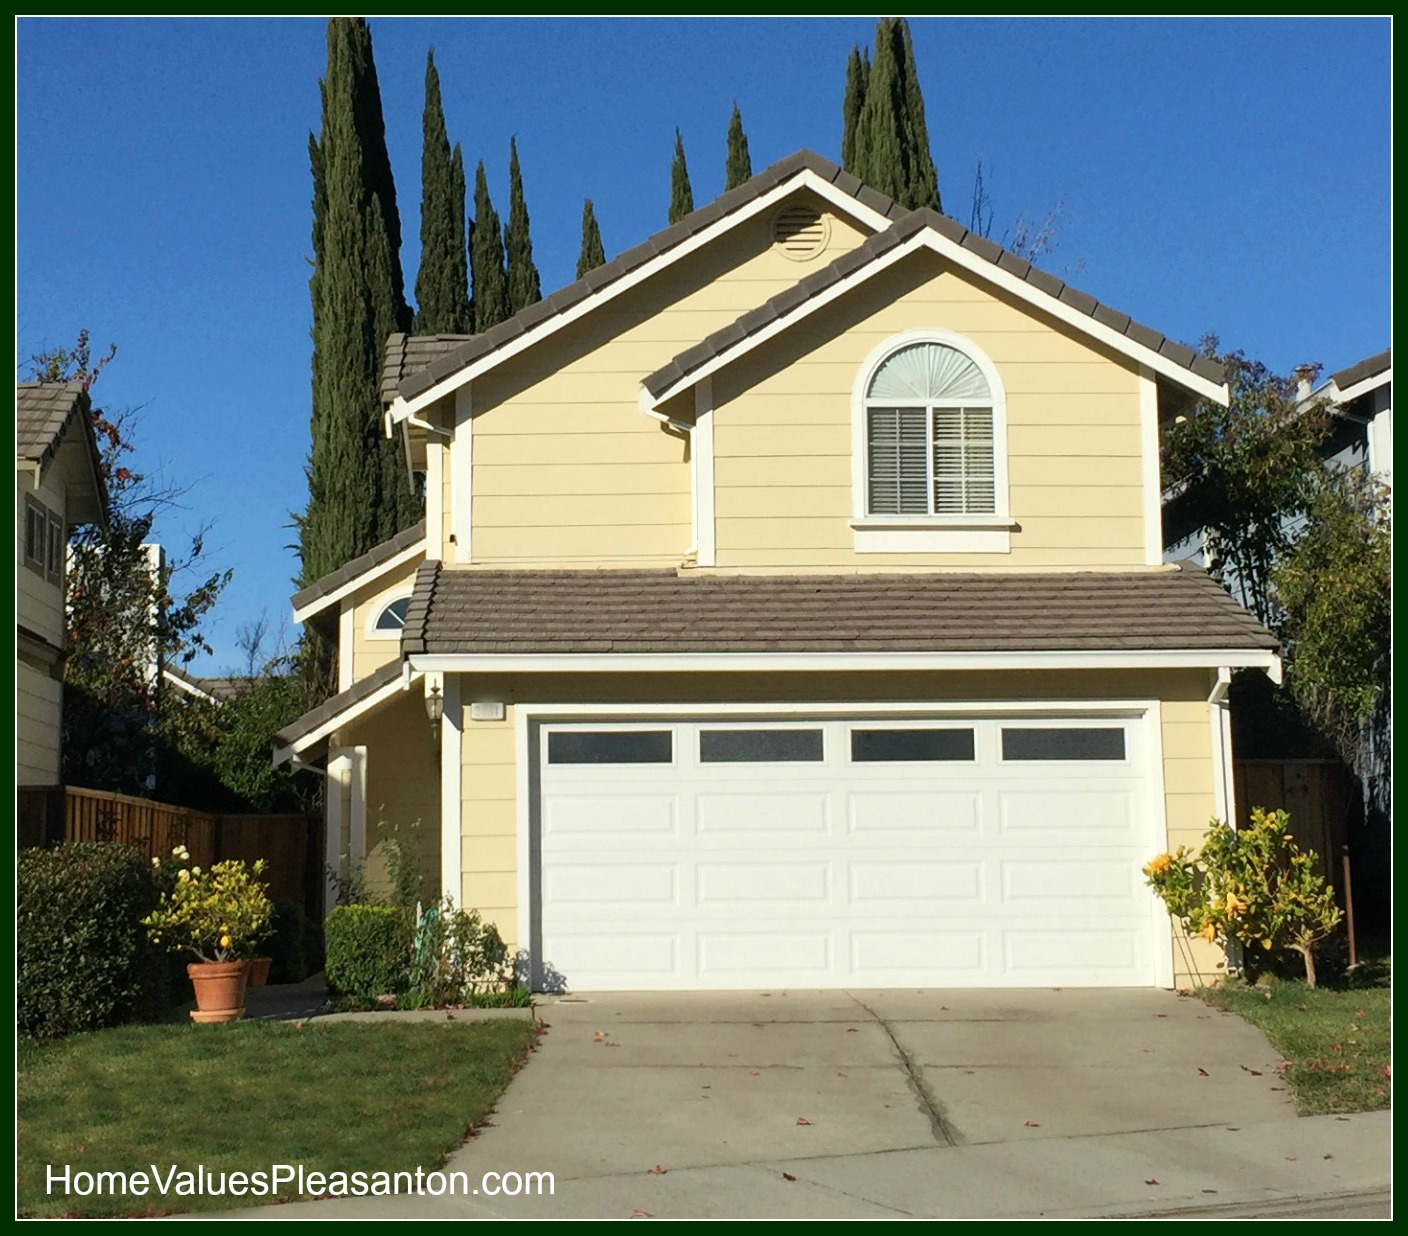 Pleasanton Ca Properties - These ideas will ensure a smoother home selling process